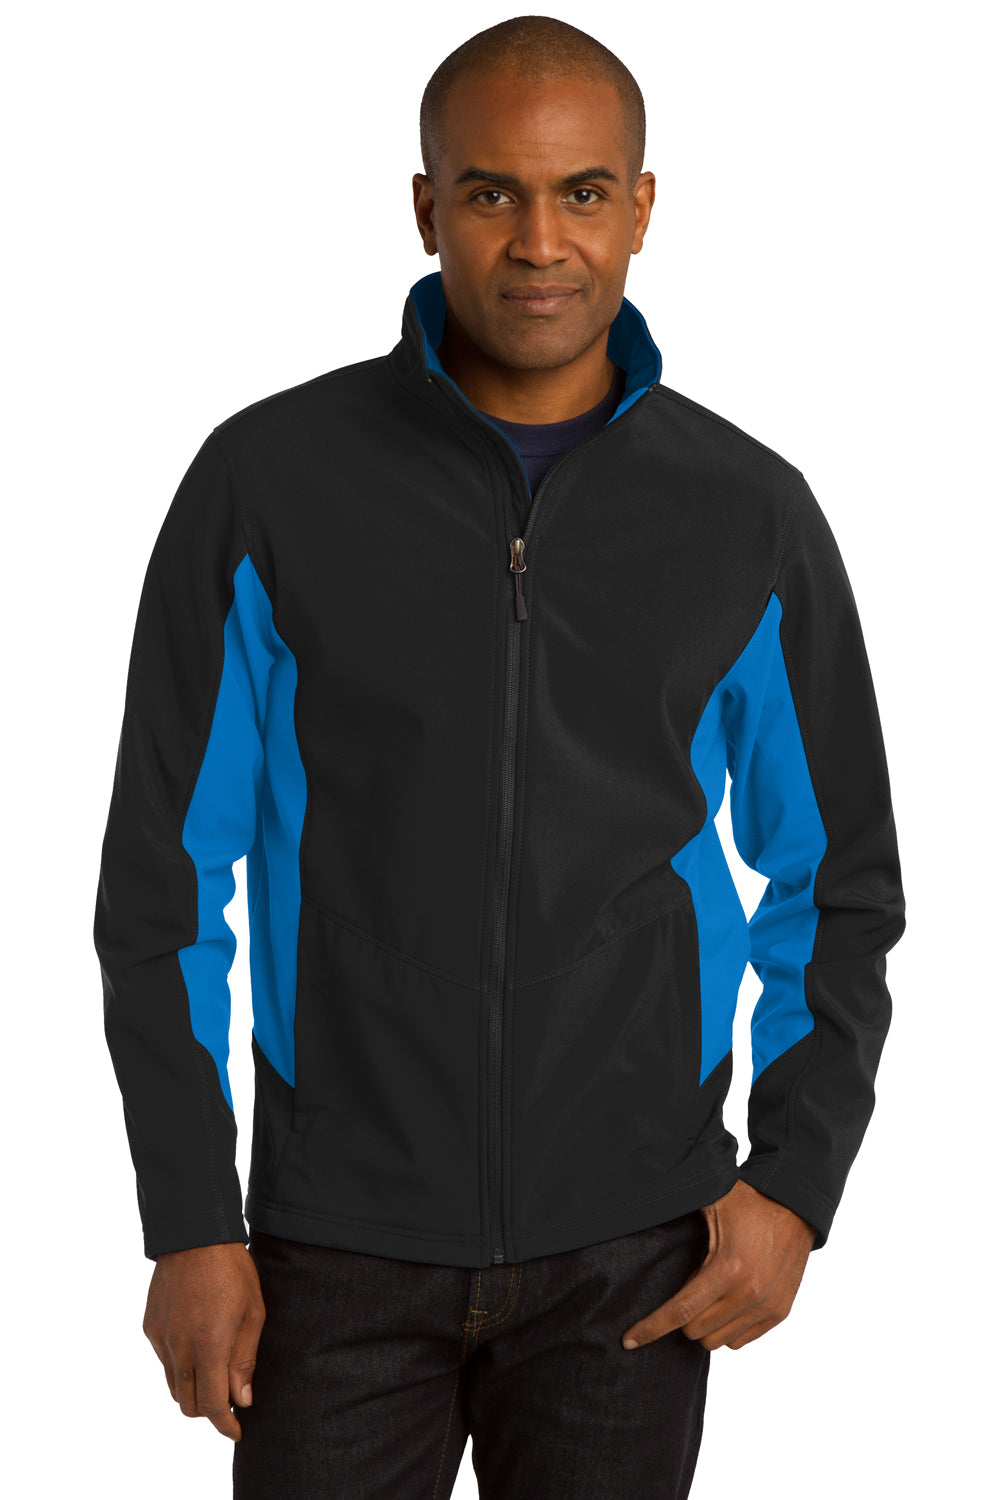 Port Authority J318 Mens Core Wind & Water Resistant Full Zip Jacket Black/Royal Blue Front